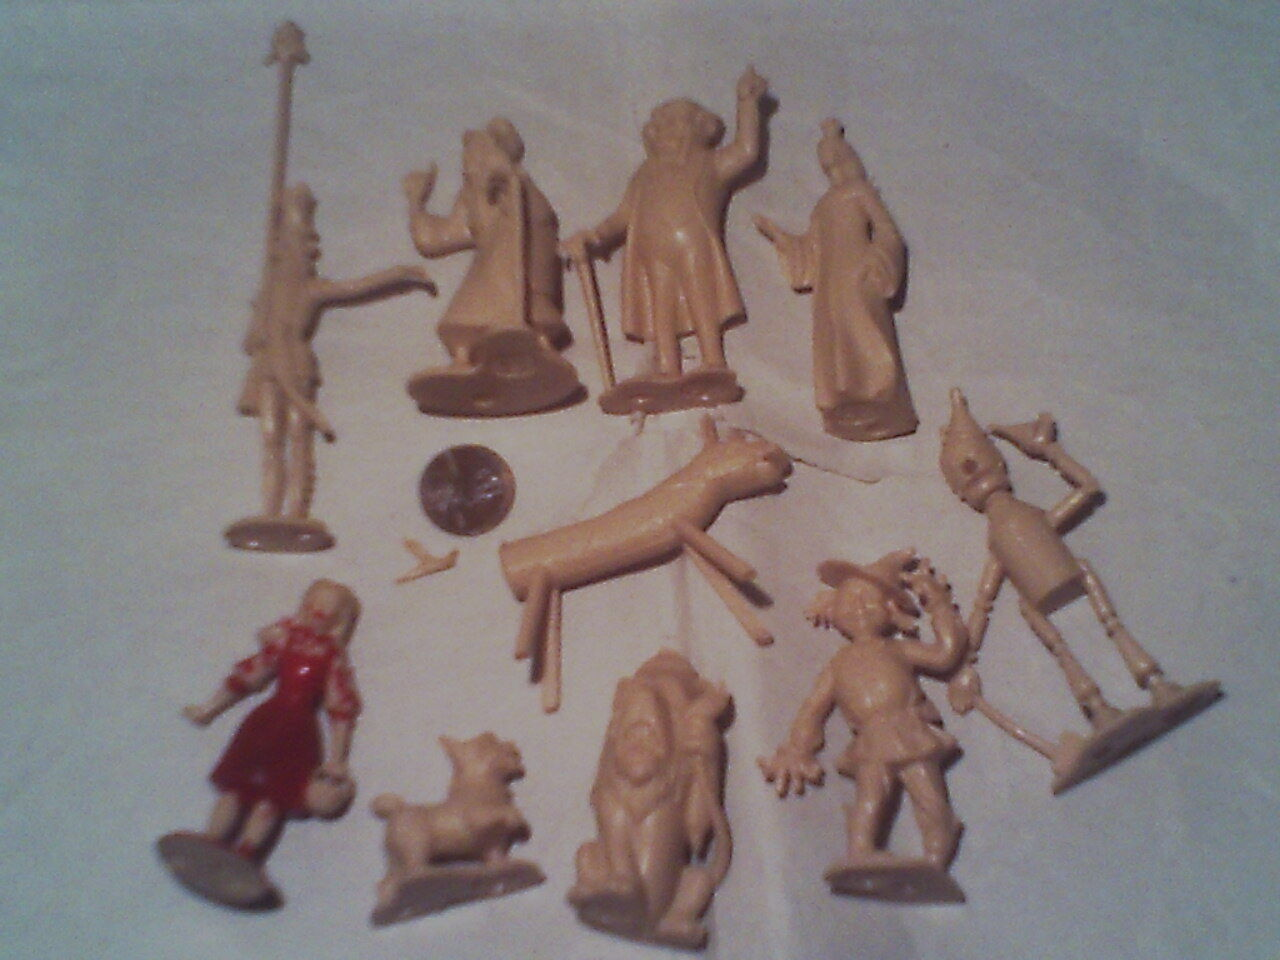 The WIZARD OF OZ PLAYSET FIGURES LOT (10) MARX TOYS MGM 1967 LAND OF OZ RARE SET